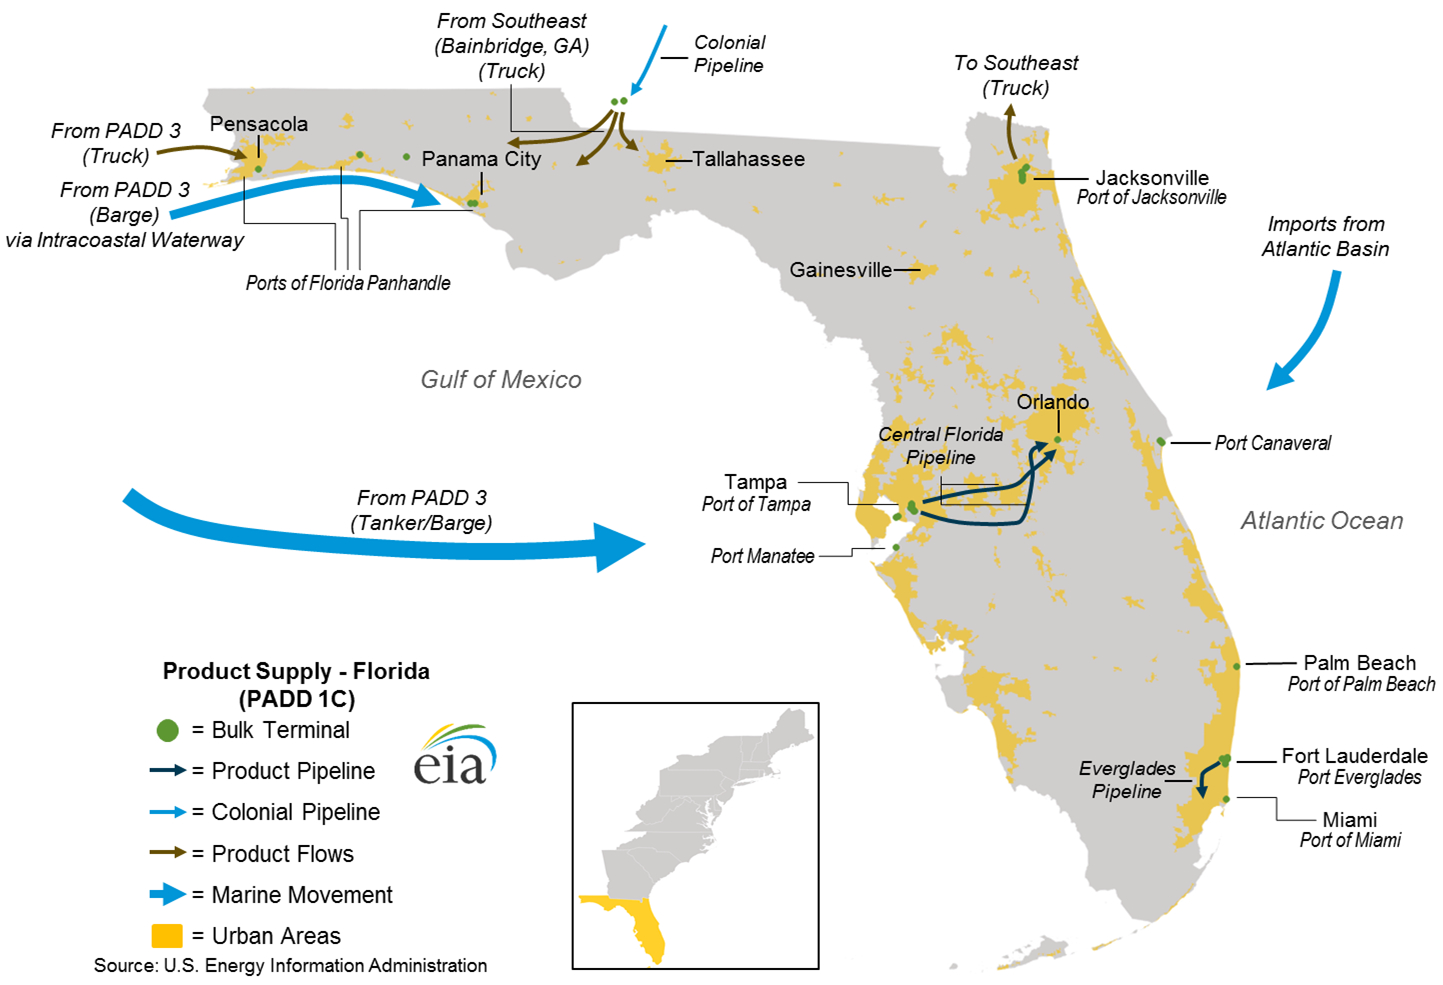 East Coast And Gulf Coast Transportation Fuels Markets - Energy - Natural Gas Availability Map Florida